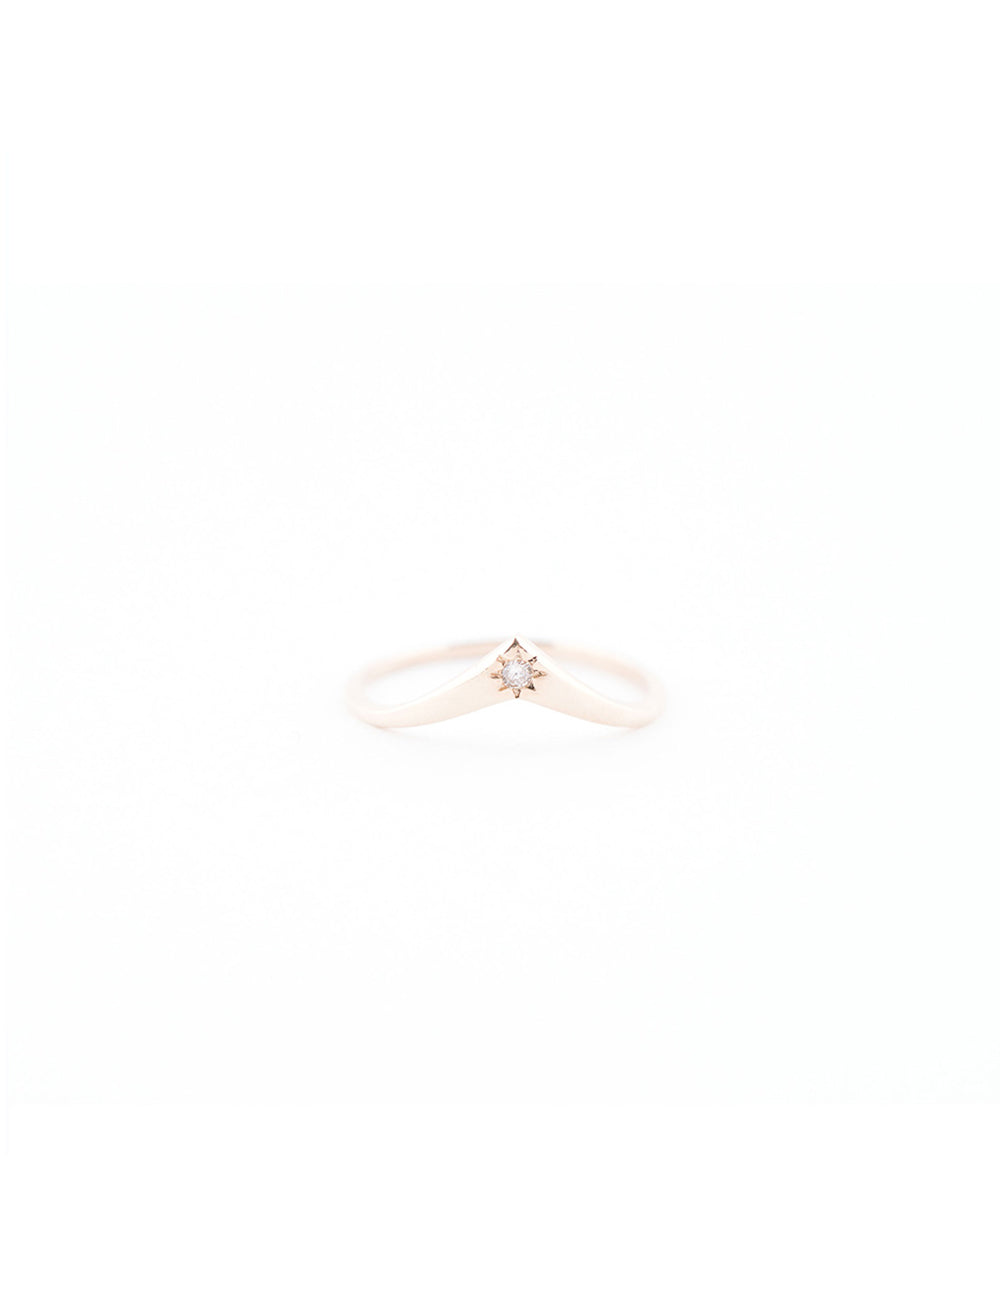 Genie Ring with White or Black Conflict Free Diamond